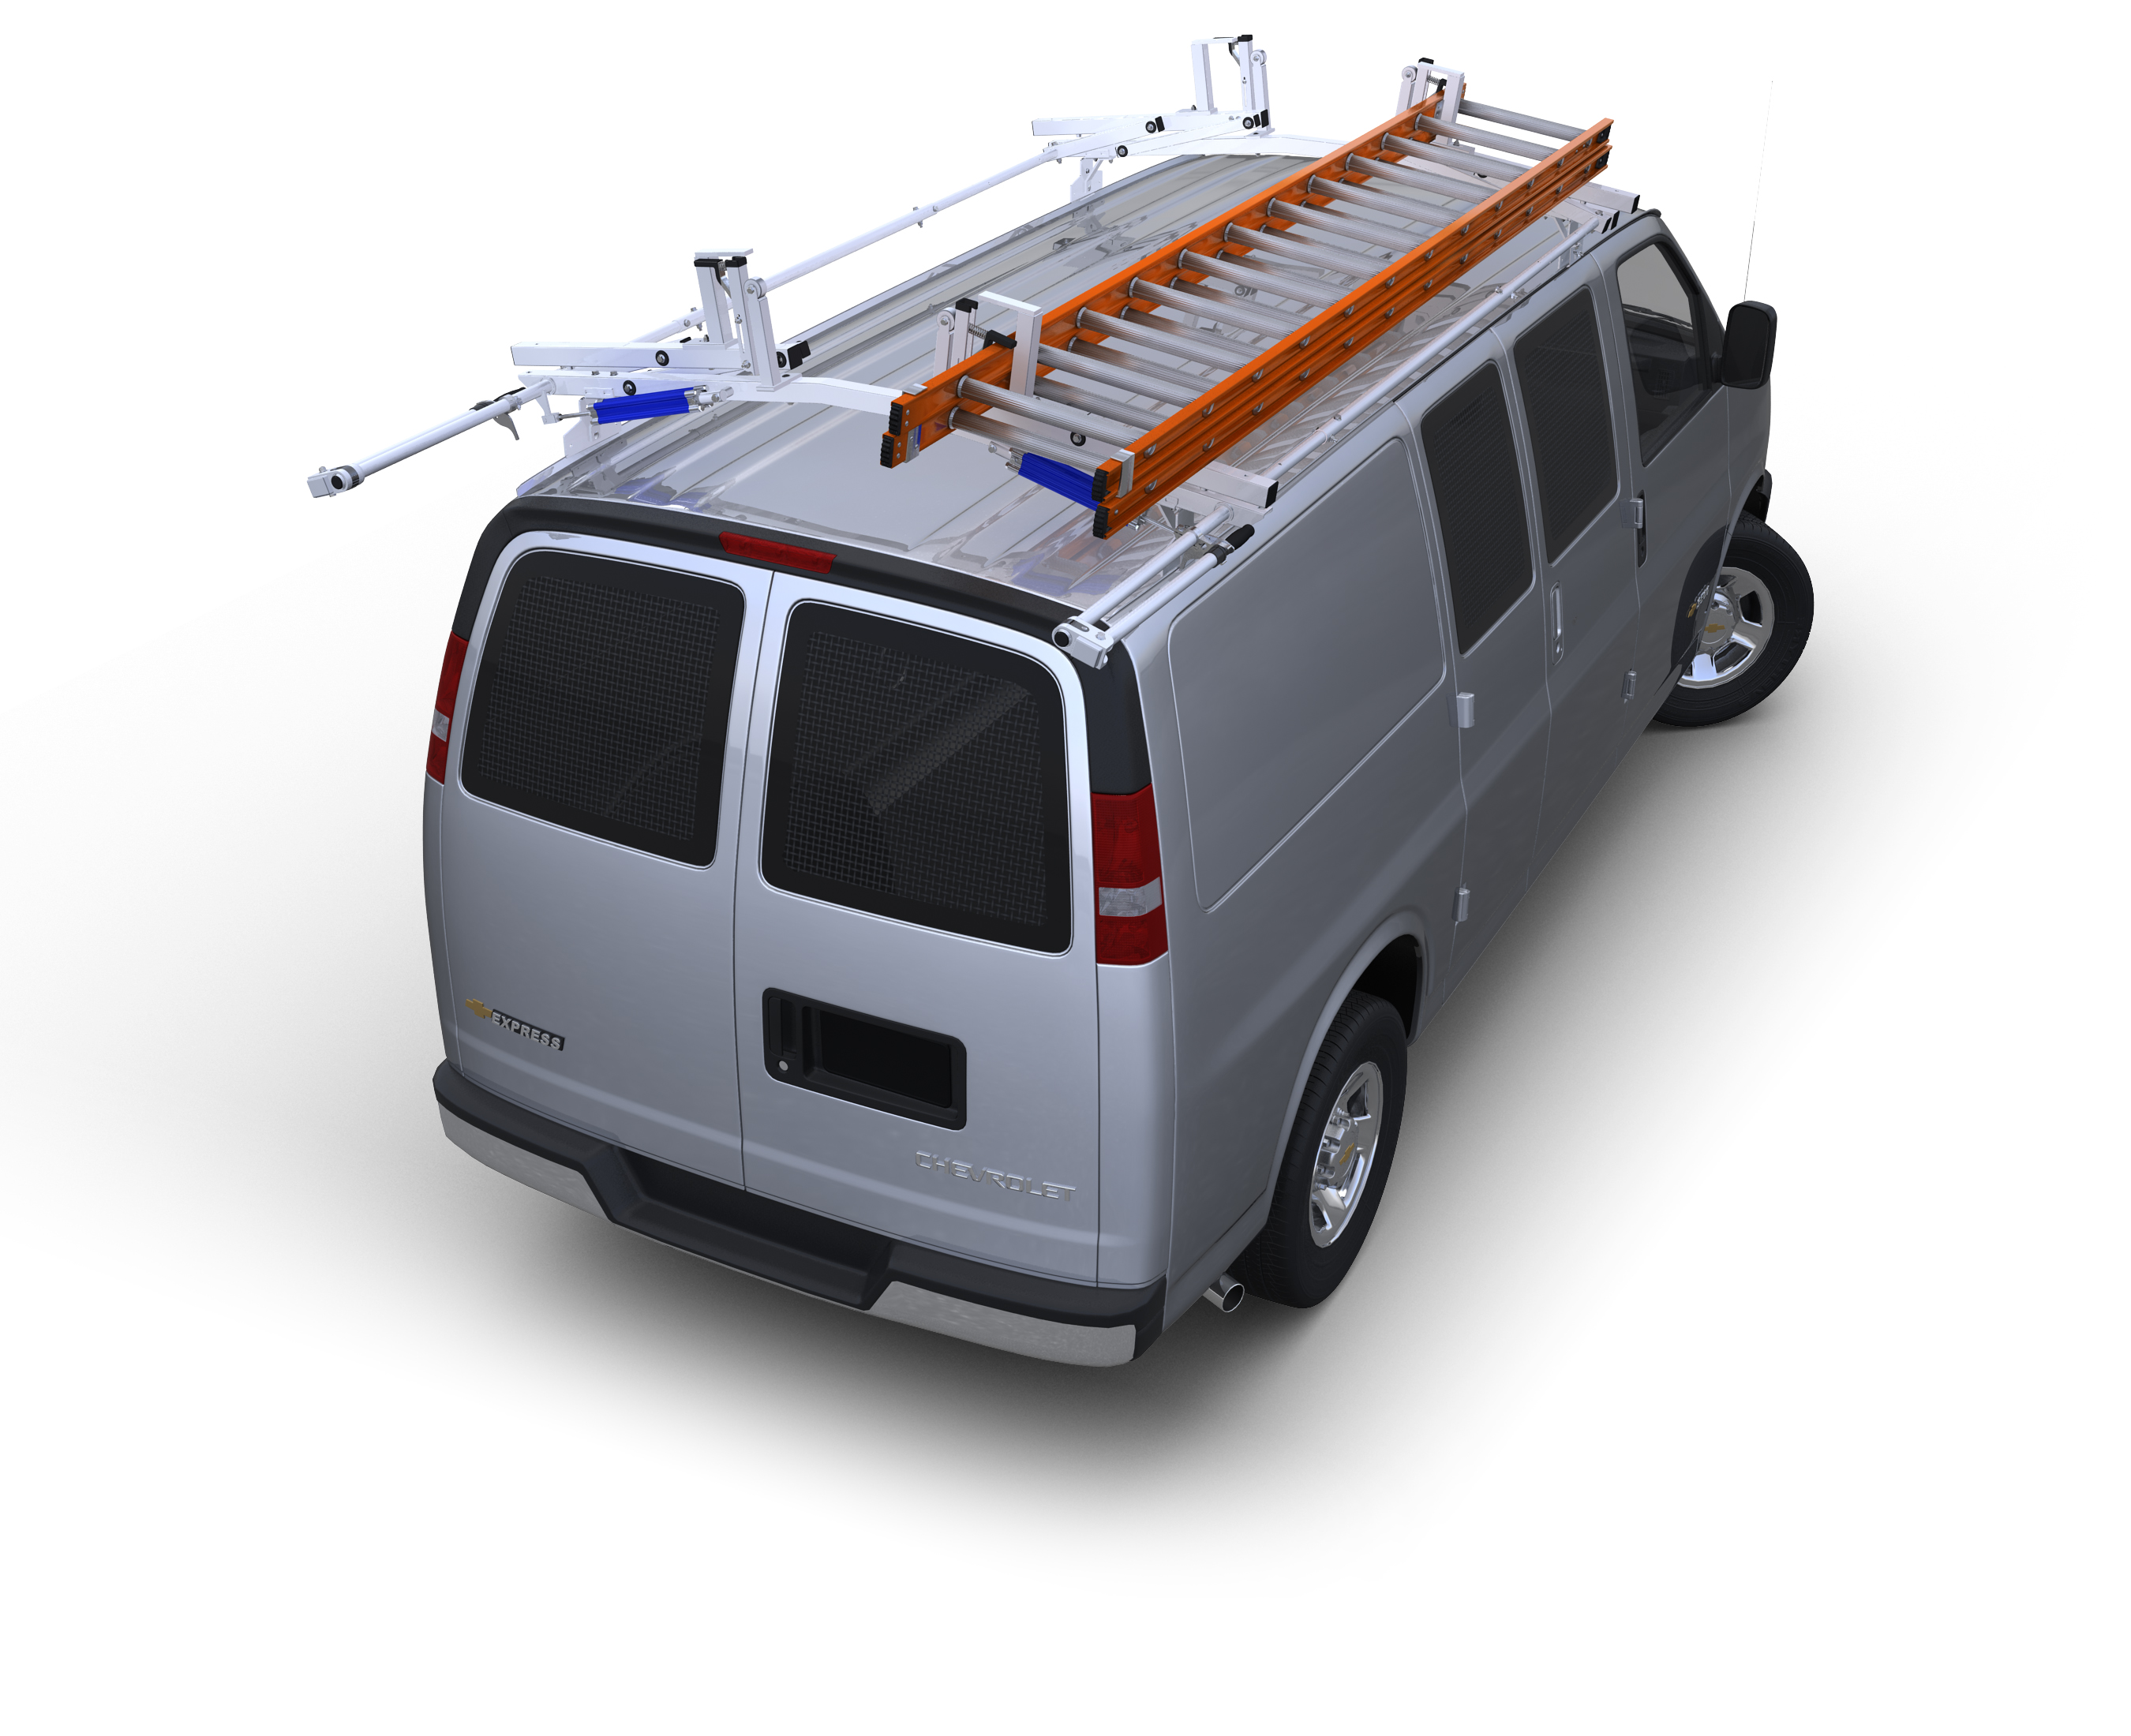 "Chevy City Express & Nissan NV200 Steel Contour Shelving, 32"" wide for use Over Wheelwells"